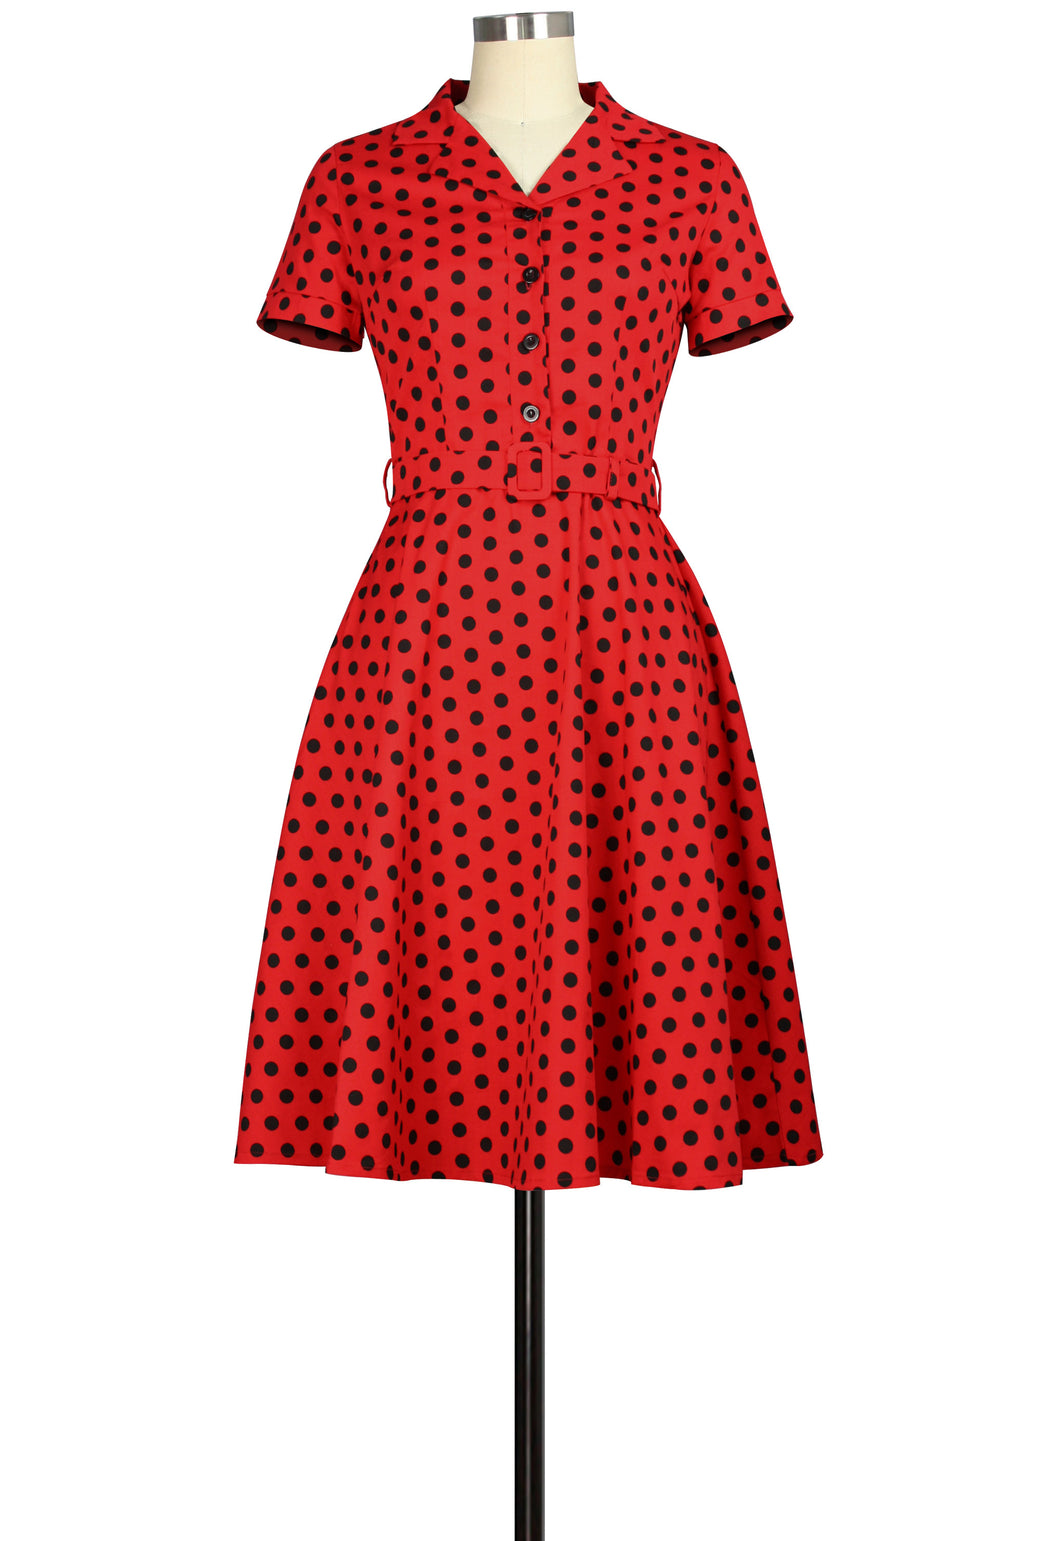 Red with Black Polka Dots Collared Dress- Size Large LAST ONE!